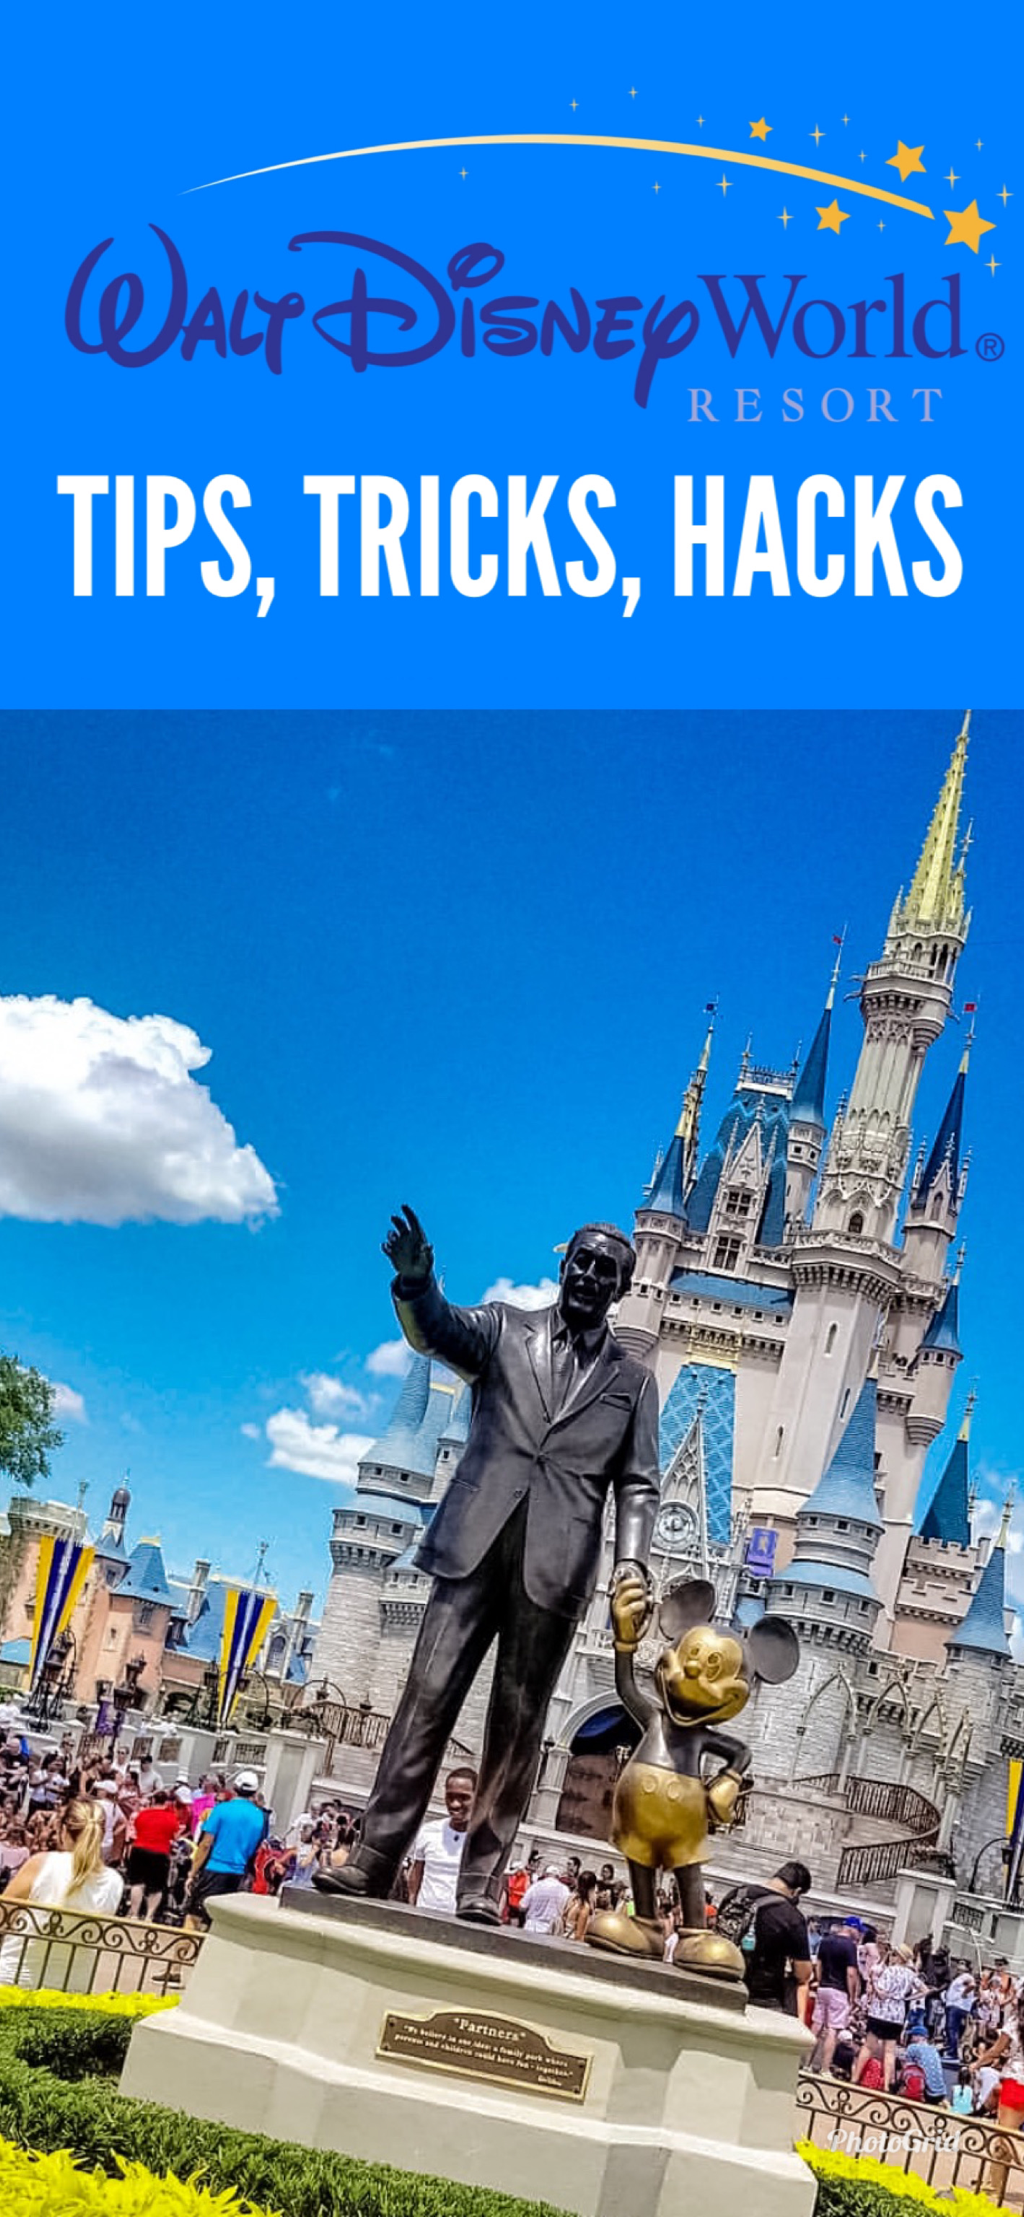 Walt Disney World Tips, Tricks, Hacks